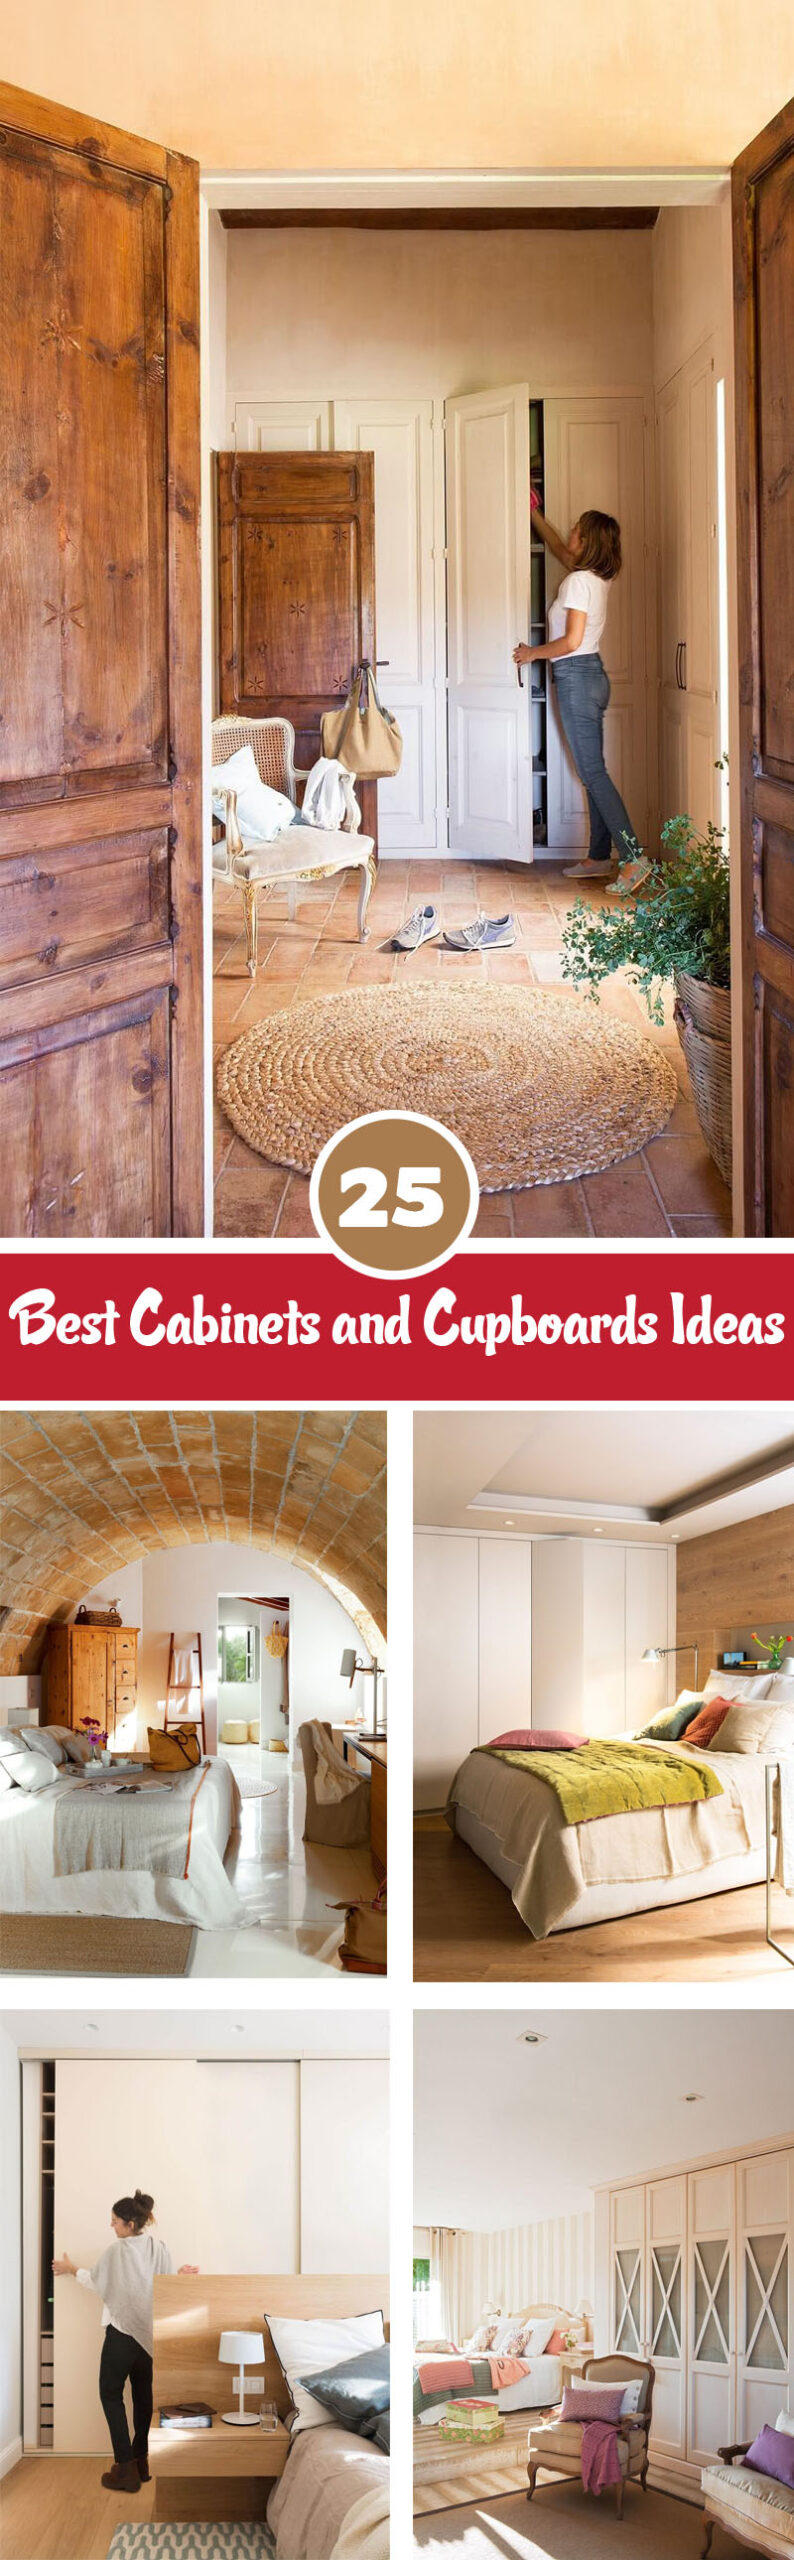 best cabinets ideas